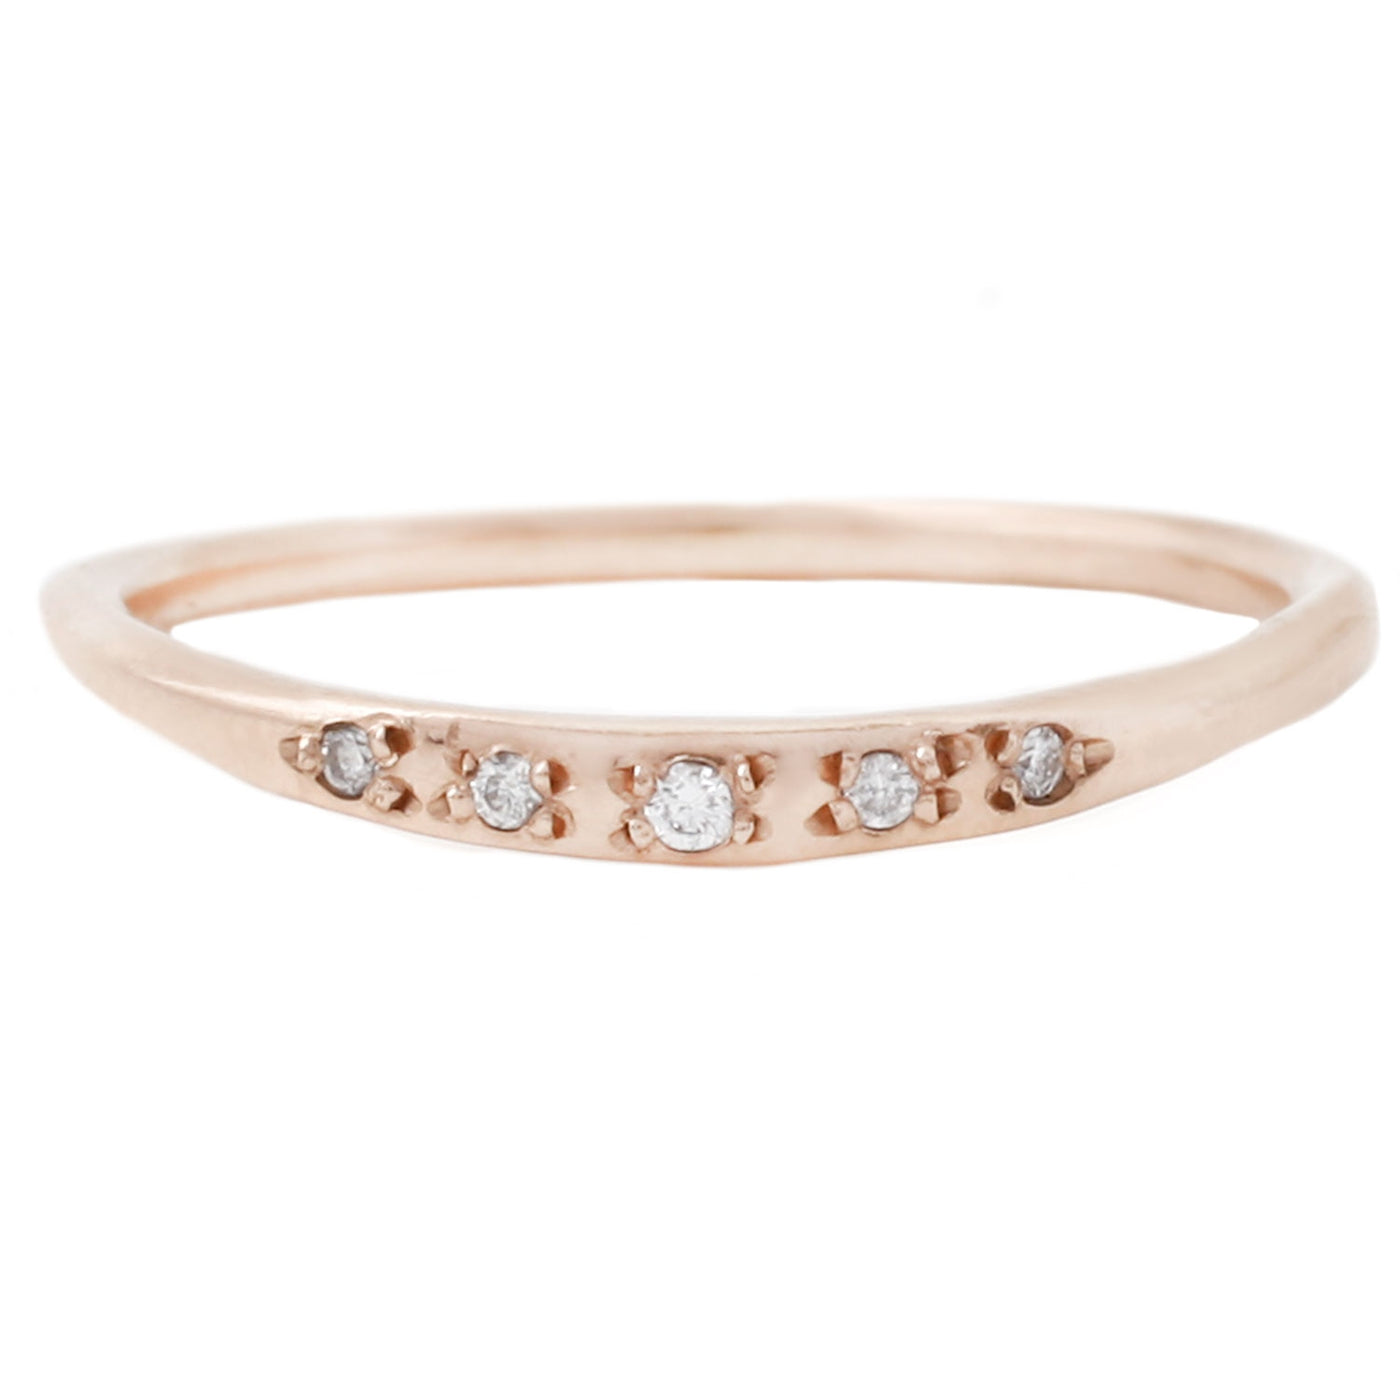 Luana Coonen Rose Gold Starry Arch Ring